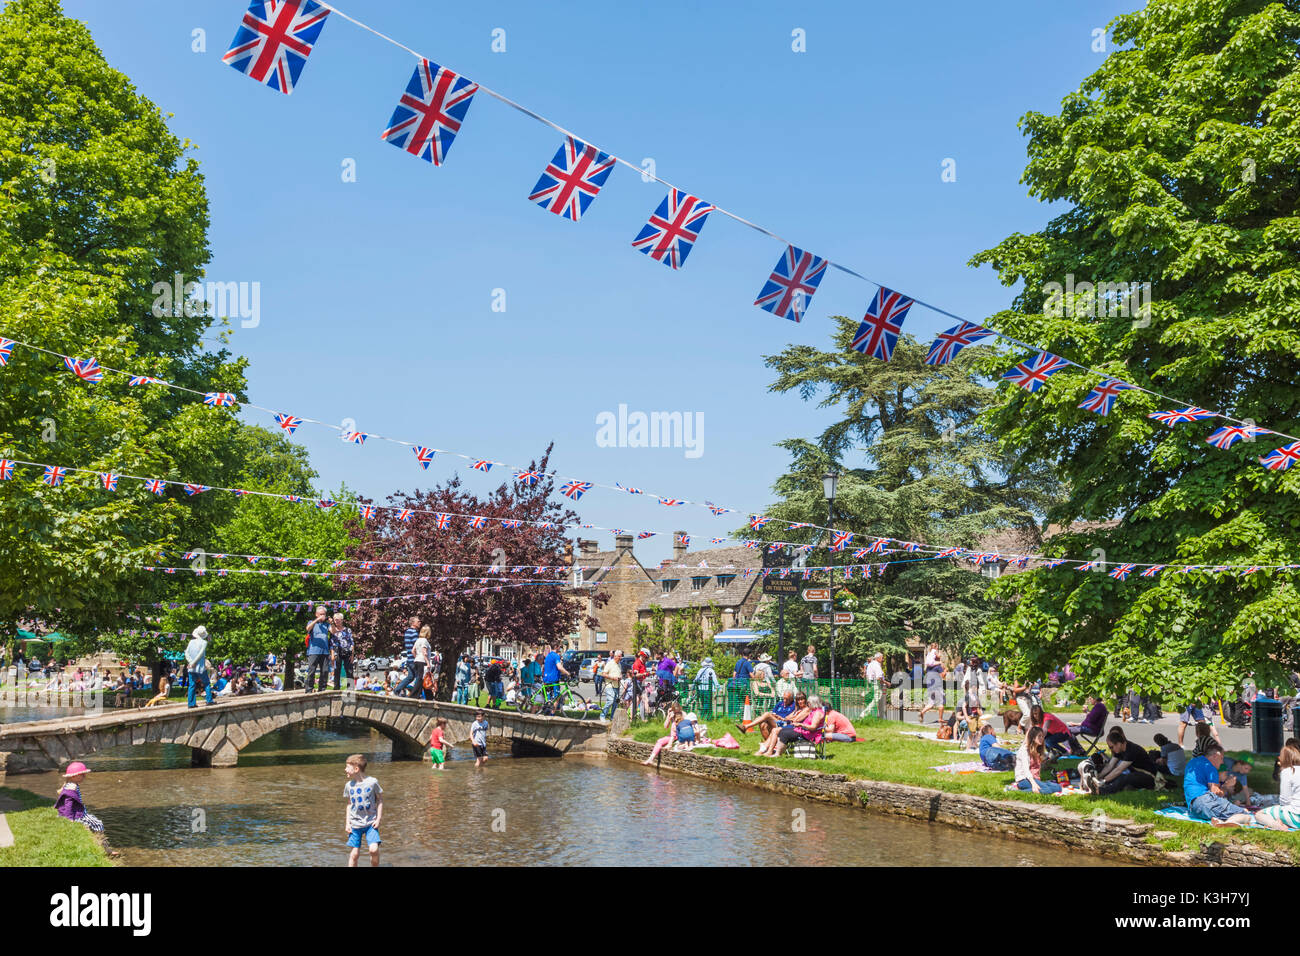 England, Gloucestershire, Cotswolds, Bourton-on-the-water - Stock Image